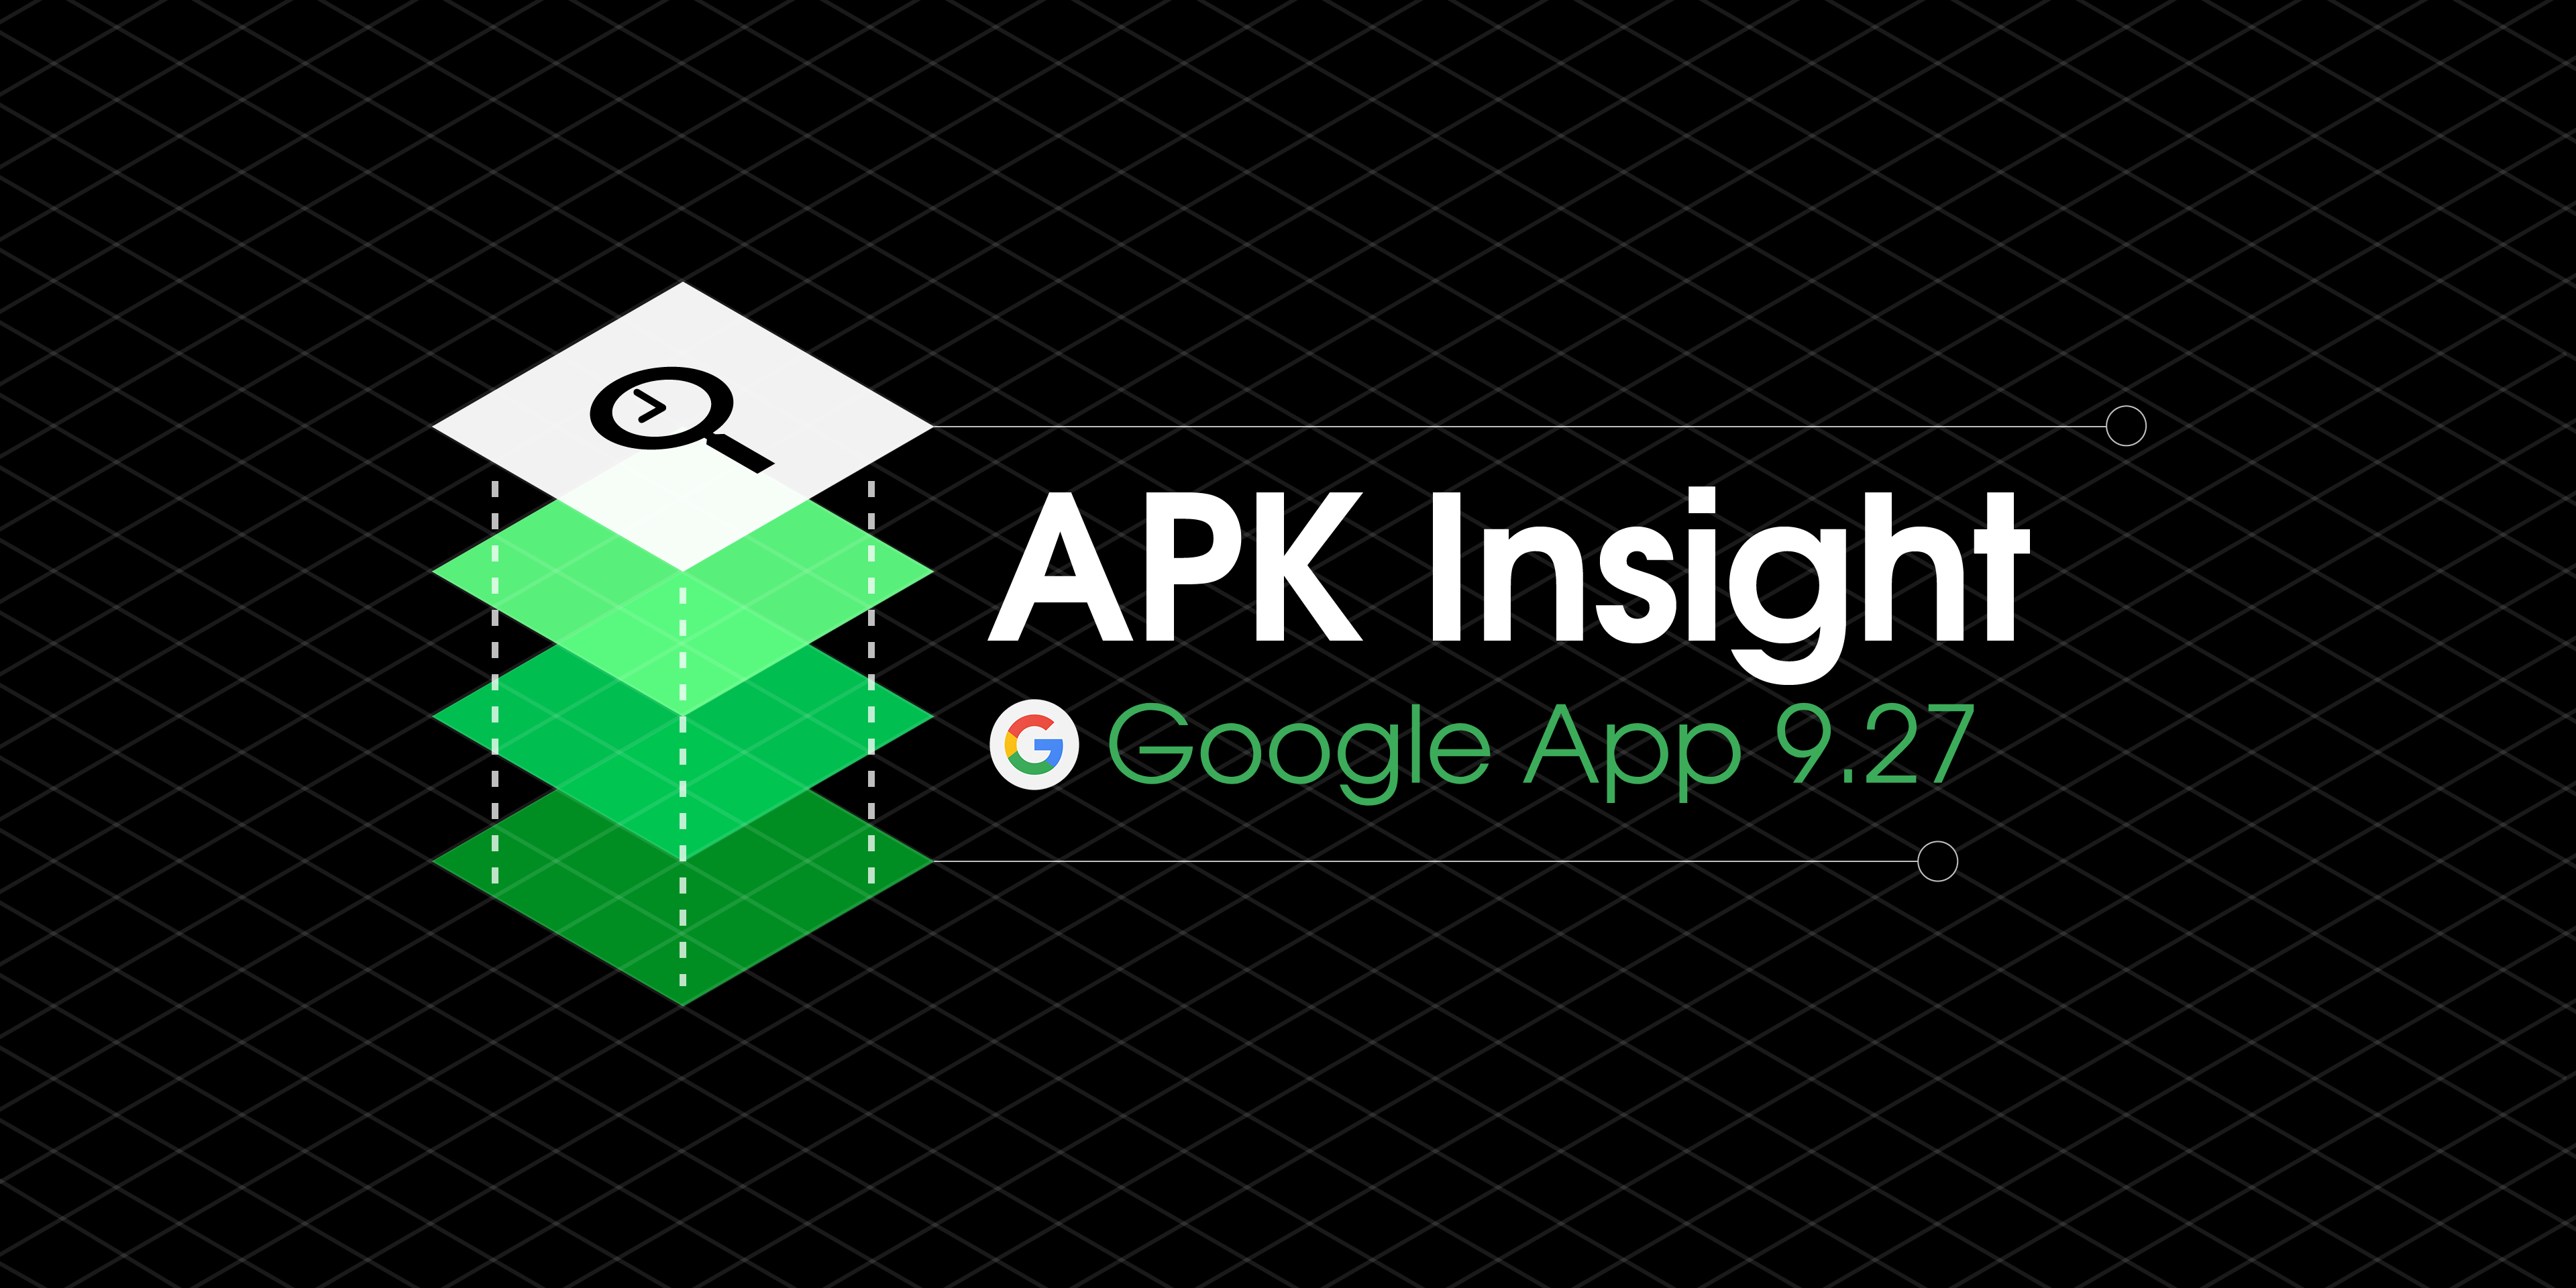 Google app 9.27 widely rolls out Material Theme bottom bar, Settings revamp, Collection sharing [APK Insight]